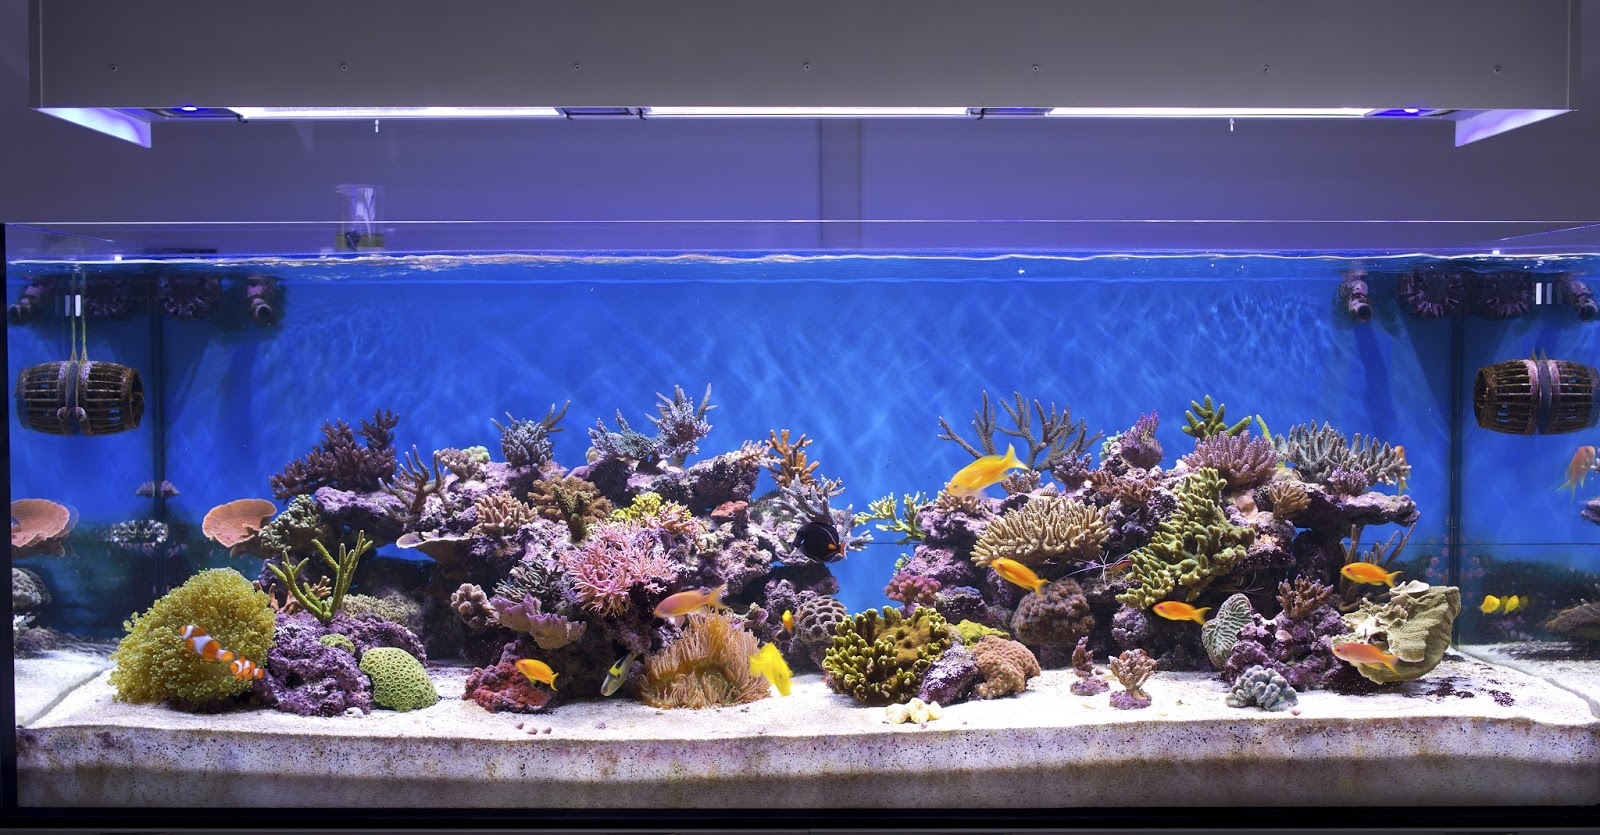 Fish aquarium price in bangalore - Maintaining A Clean Aquarium